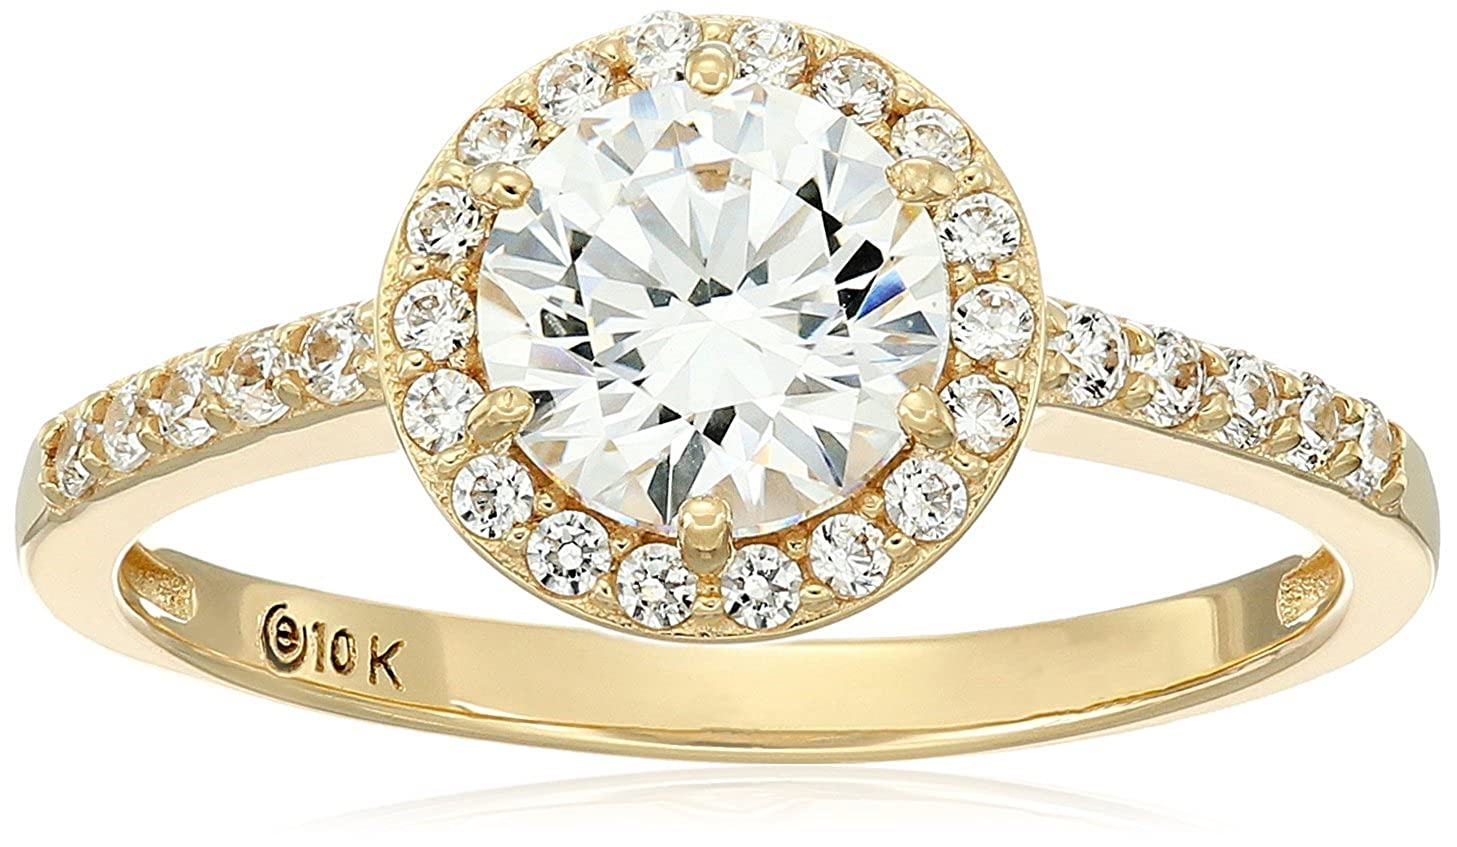 a2c1e25ee Amazon.com: 10k Gold Swarovski Zirconia Round-Cut Halo Ring: Jewelry